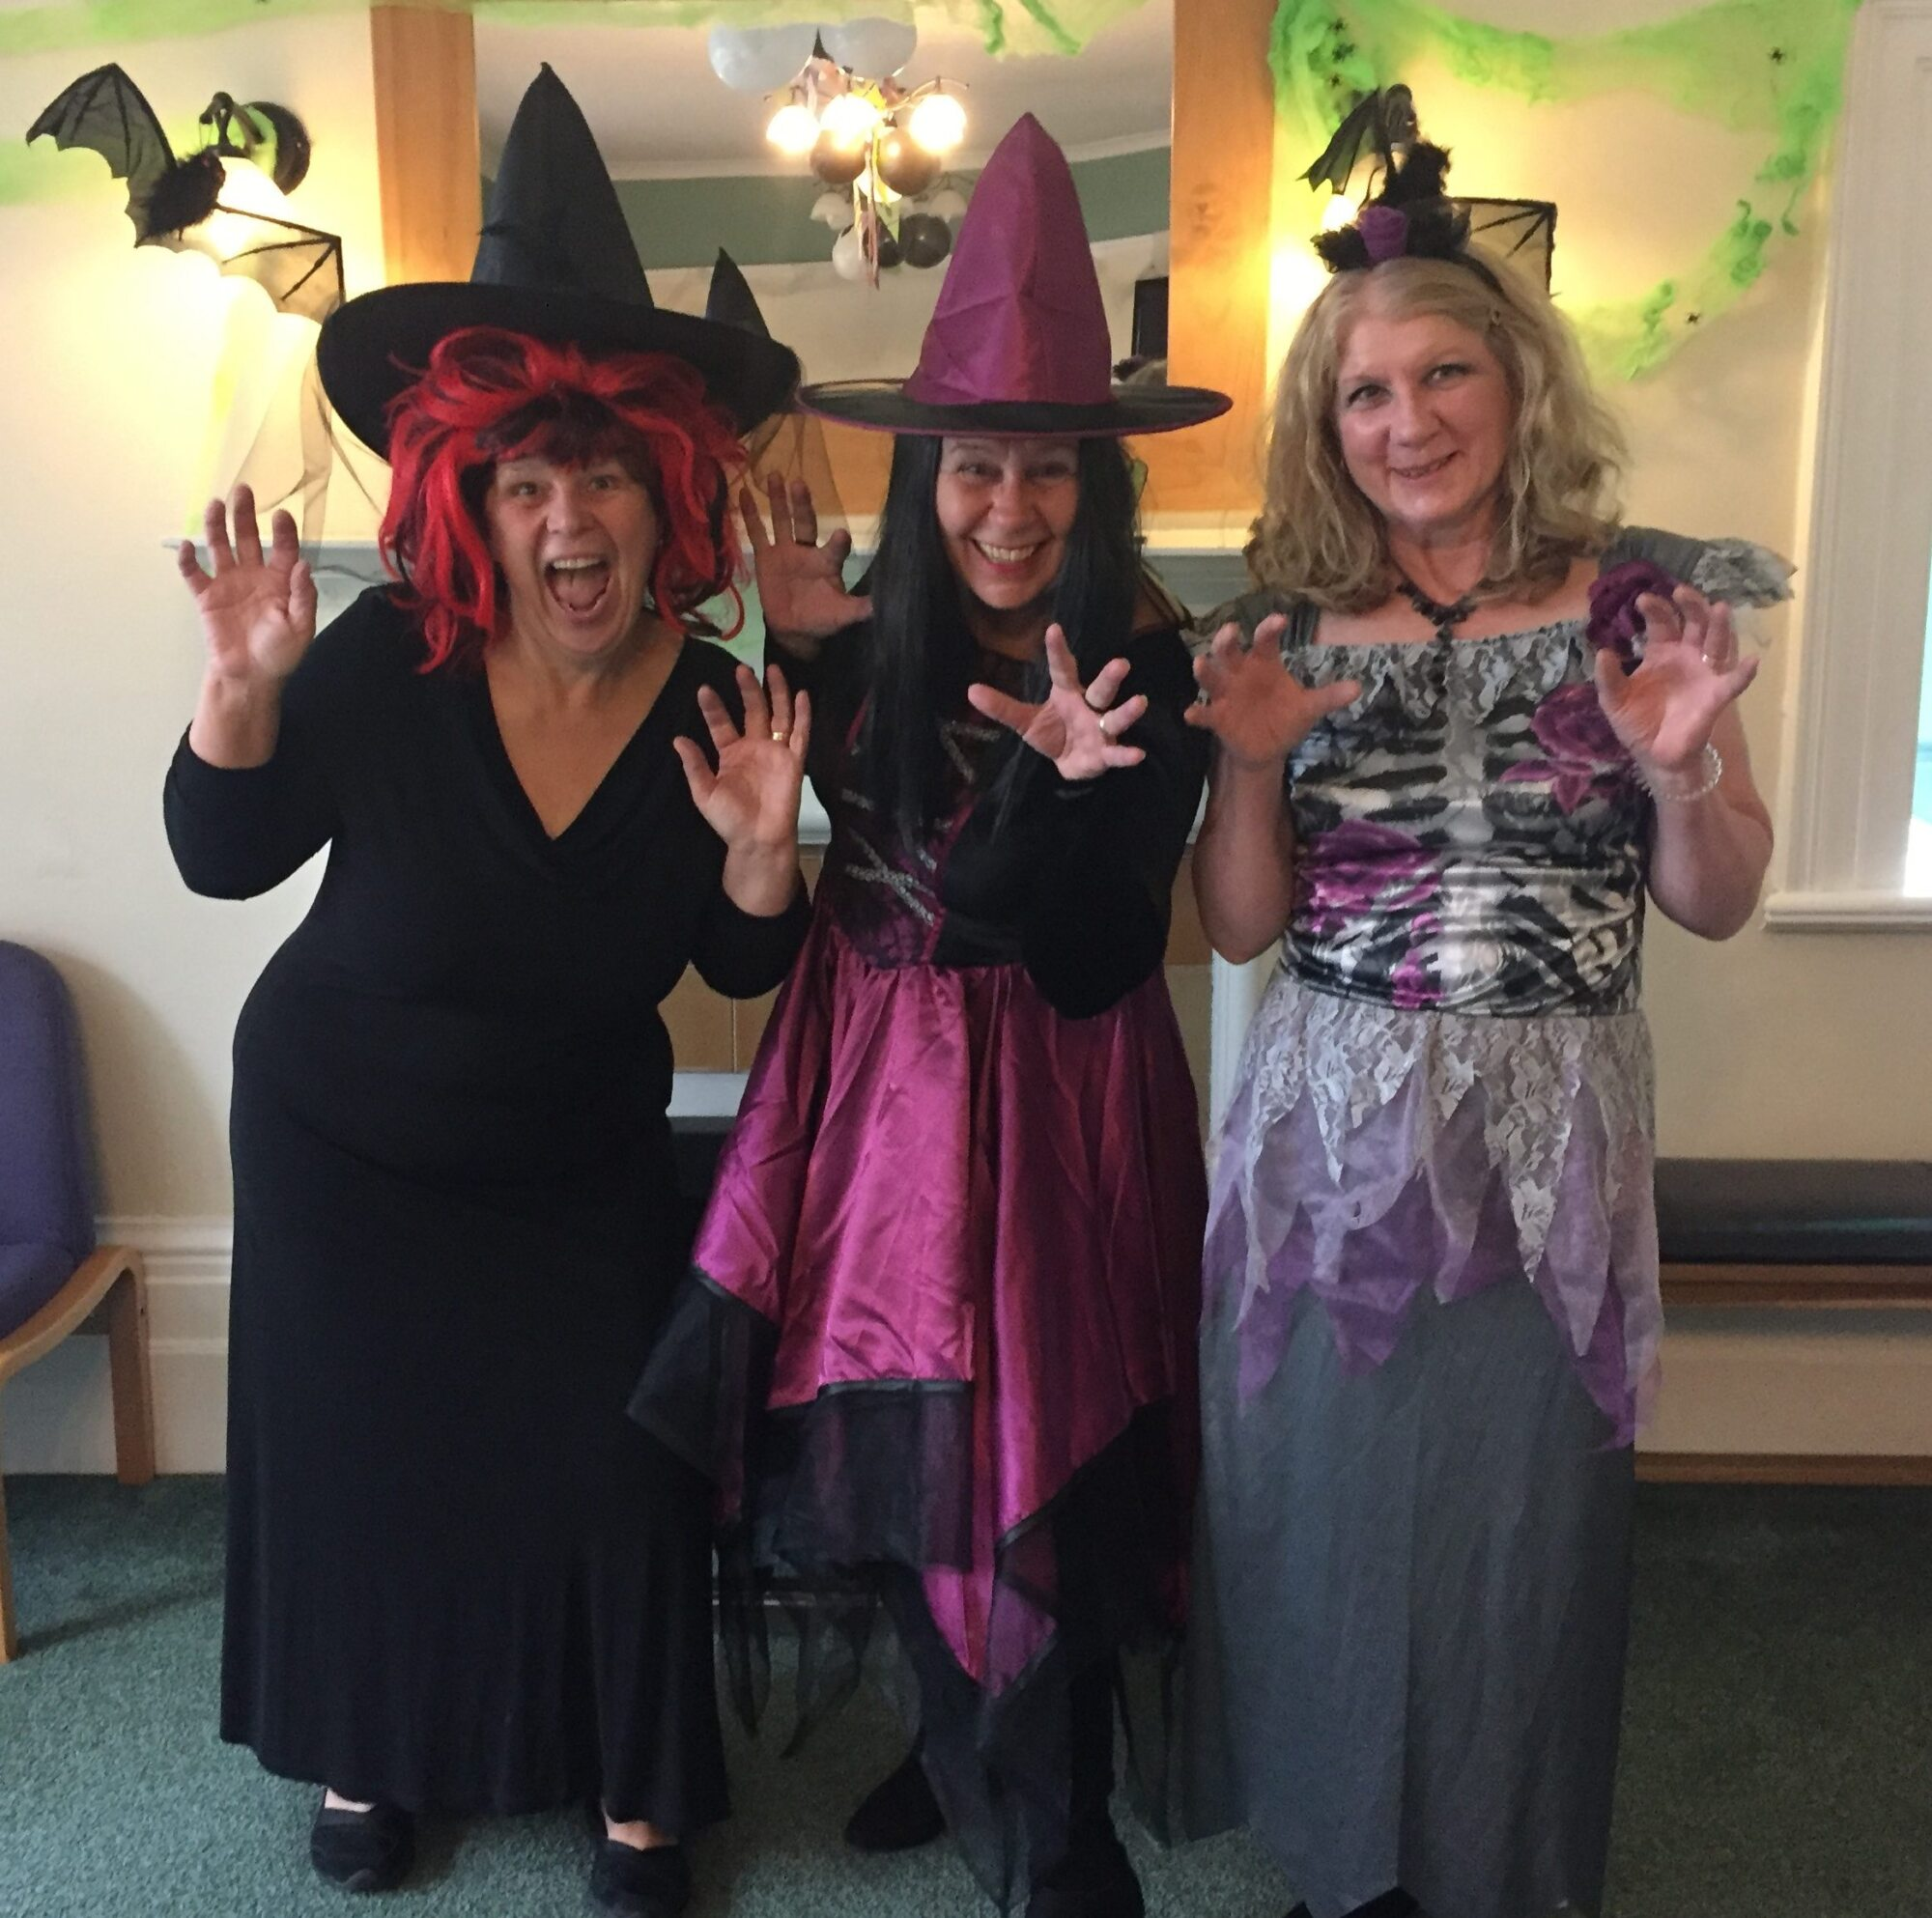 Cardfields staff dressed in Halloween outfits